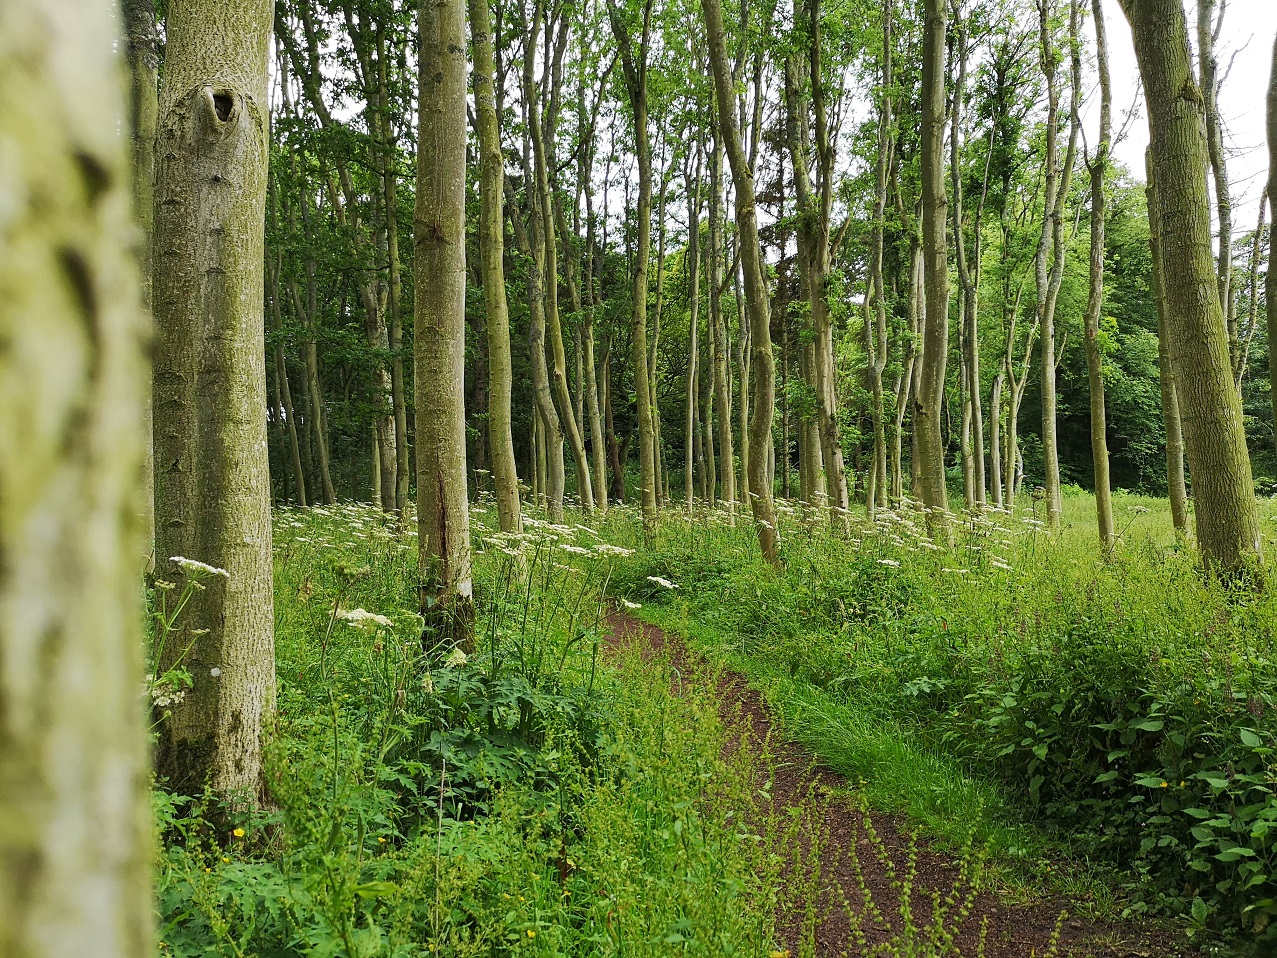 tree trunks and grassy path